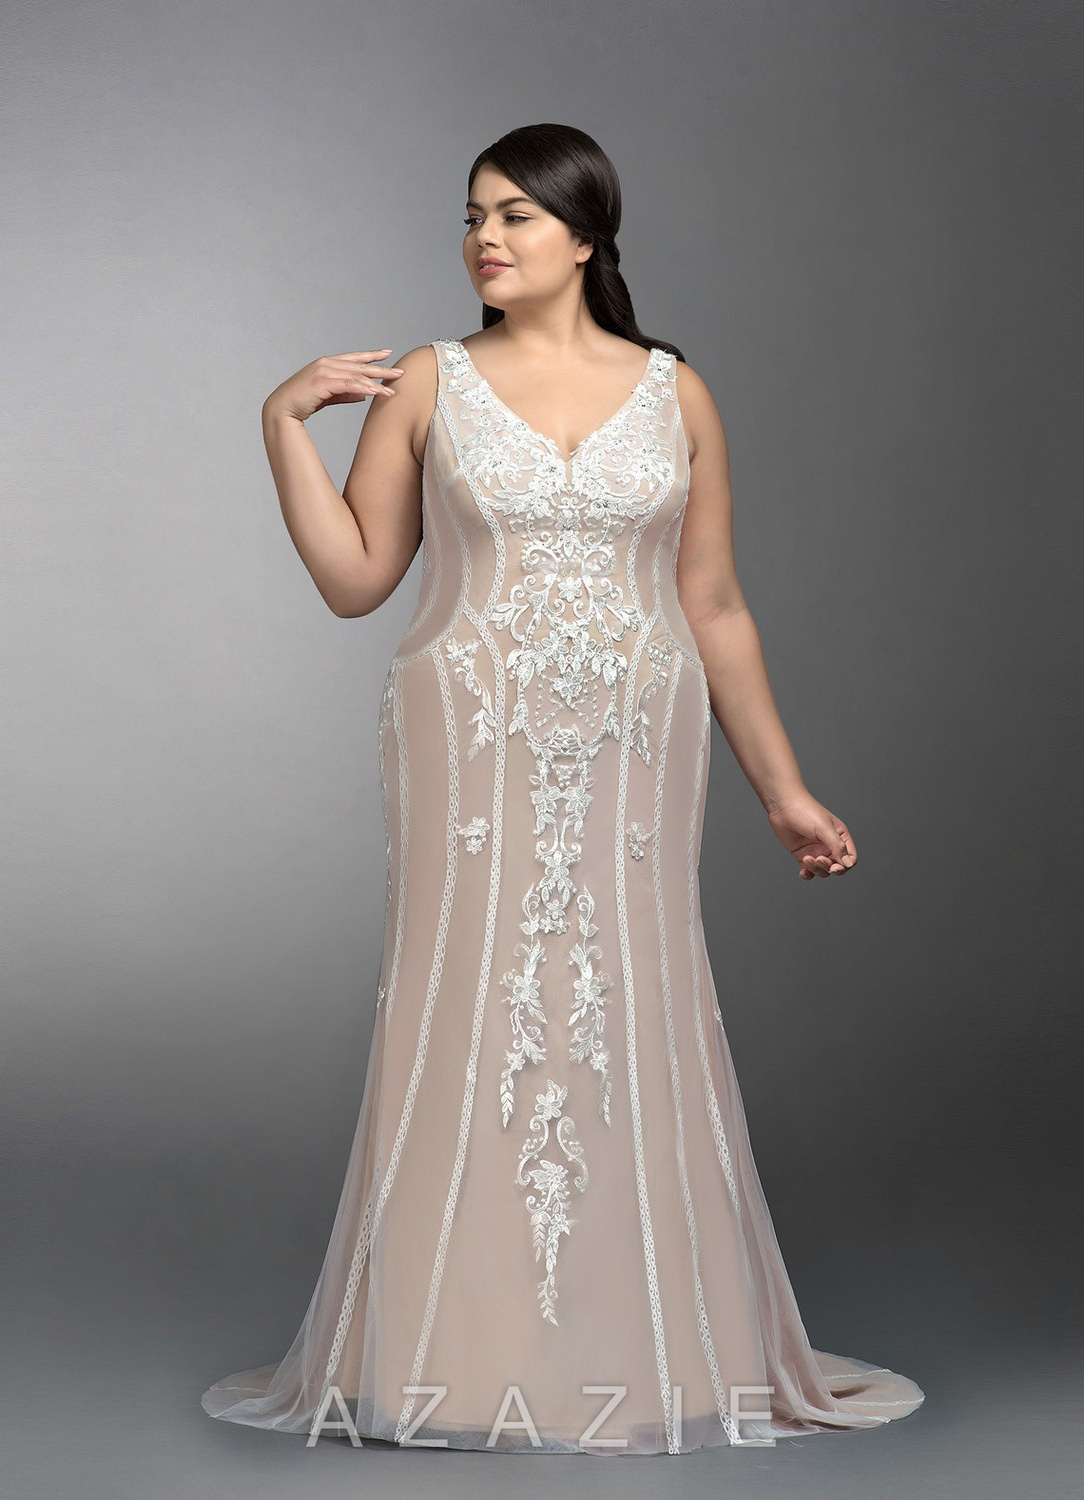 Ripley Plus Size Wedding Gown at Azazie